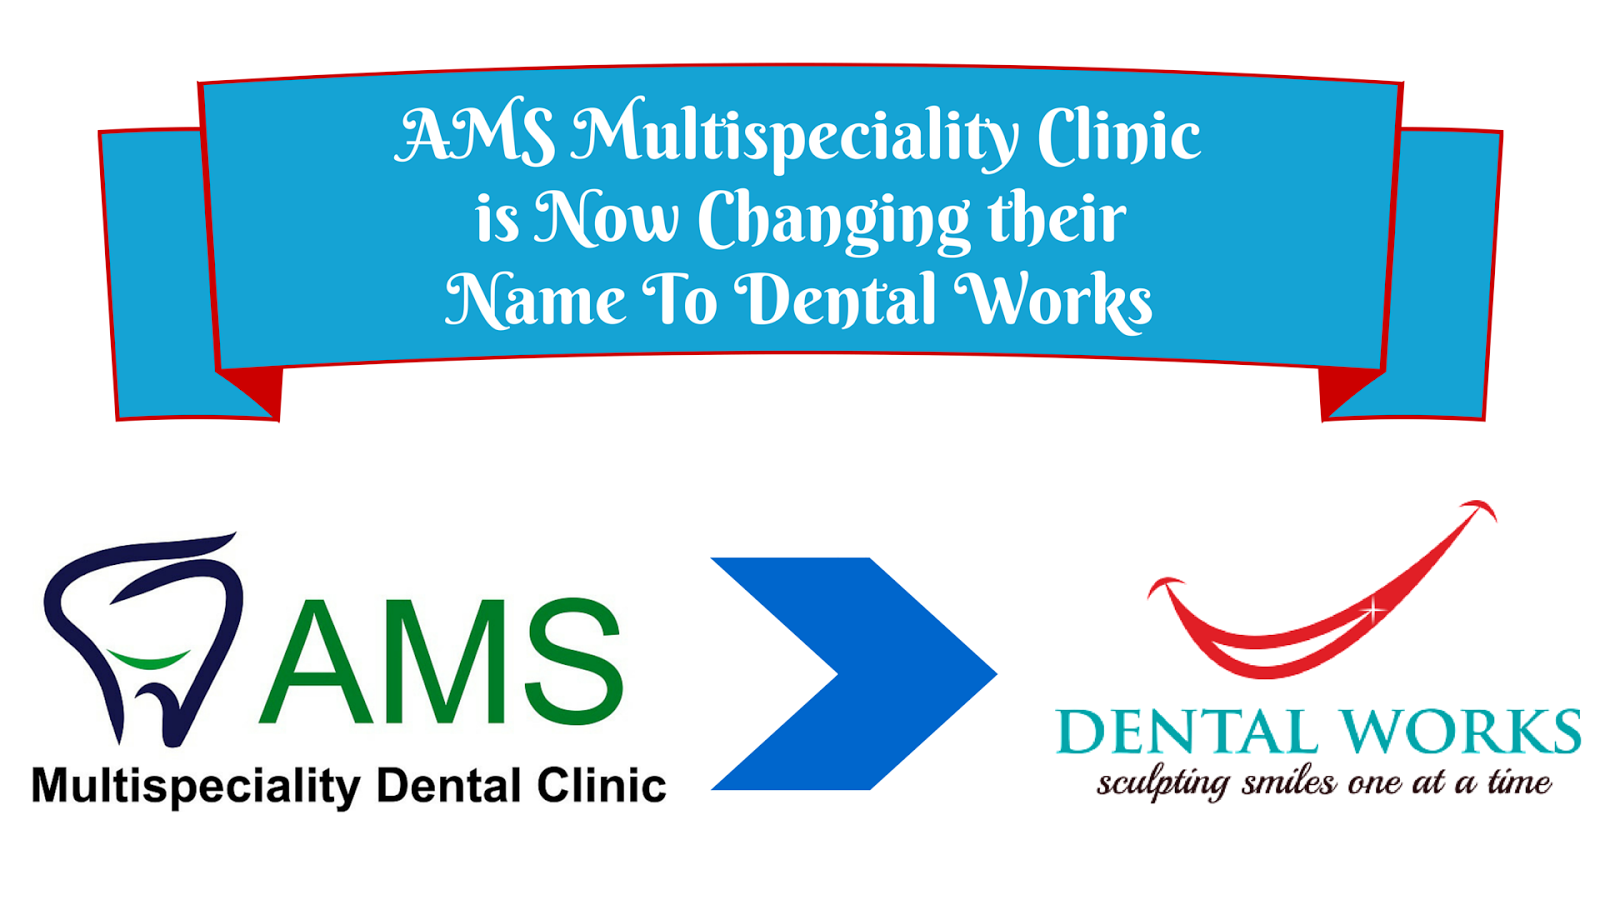 Best Dental Clinic In Bangalore: AMS Mutispeciality Dental Clinic ...